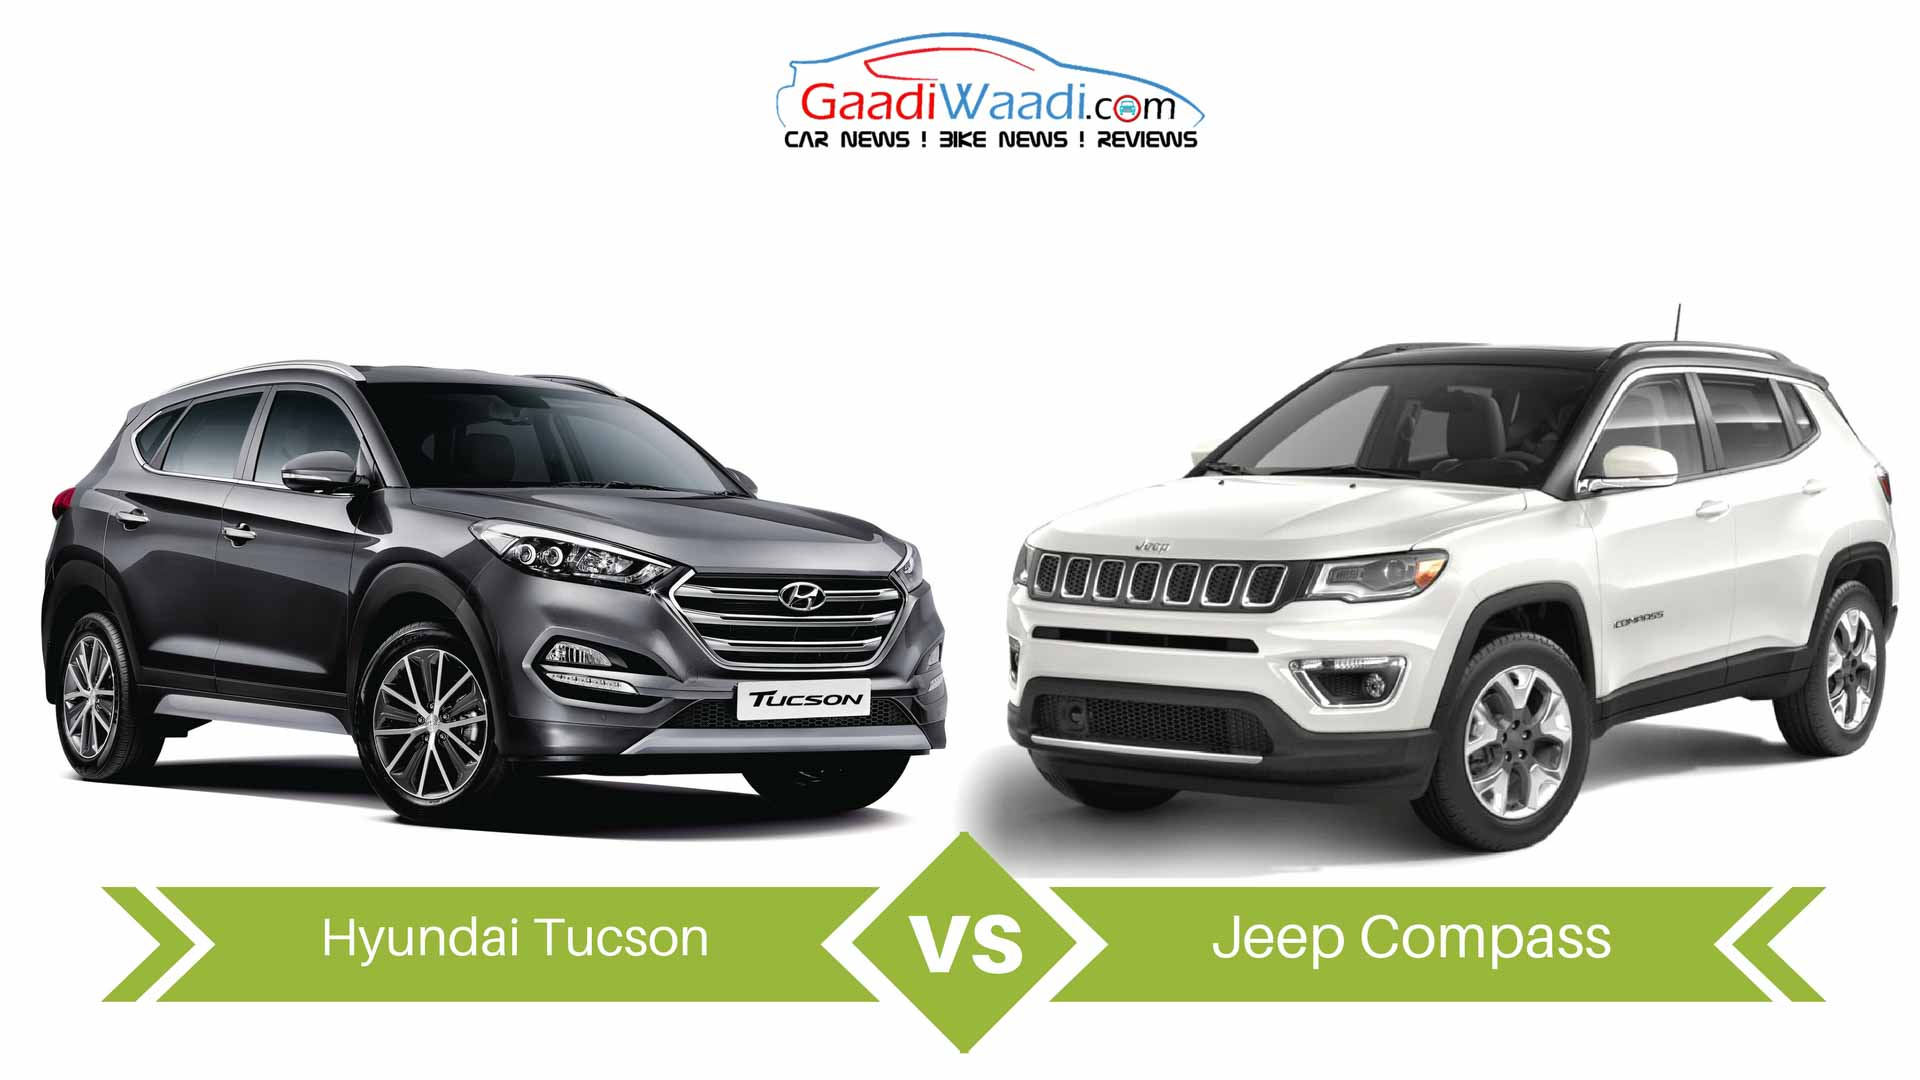 jeep compass vs hyundai tucson specs comparison. Black Bedroom Furniture Sets. Home Design Ideas